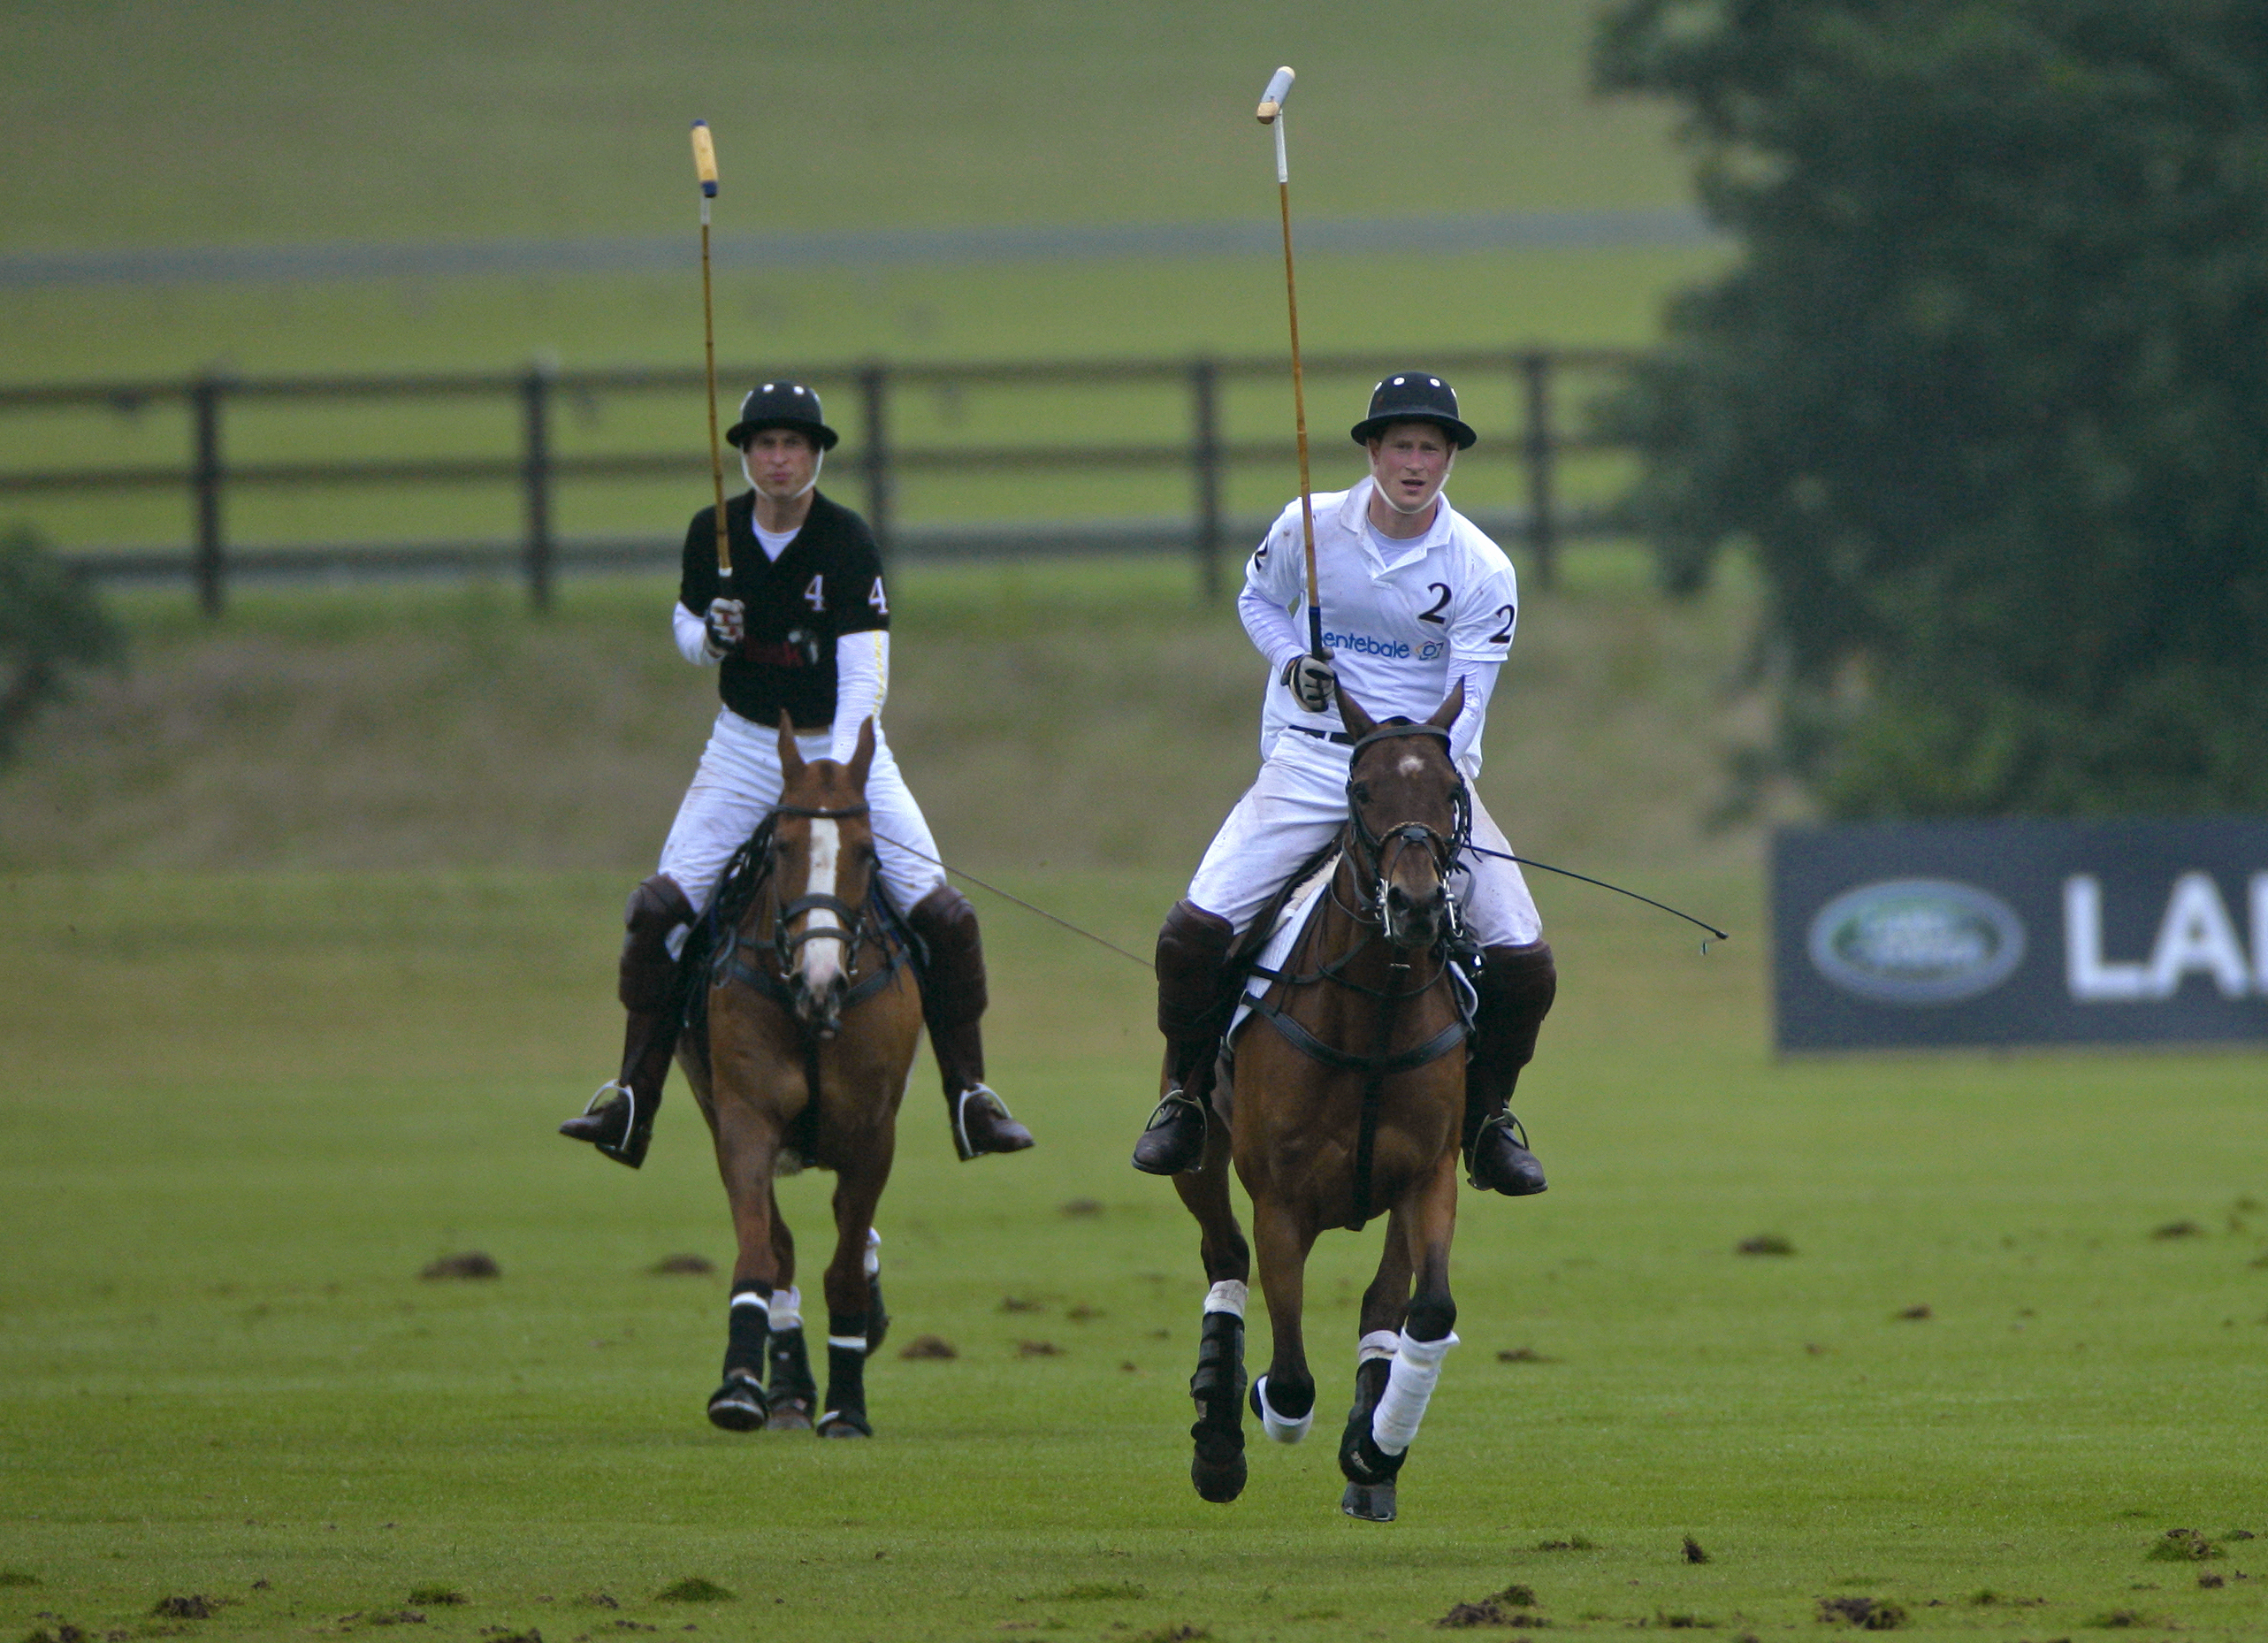 Prince William, Duke of Cambridge and Prince Harry play against each other in the Sentebale Polo Cup polo match at Coworth Park Polo Club on June 12, 2011 in Ascot, United Kingdom.